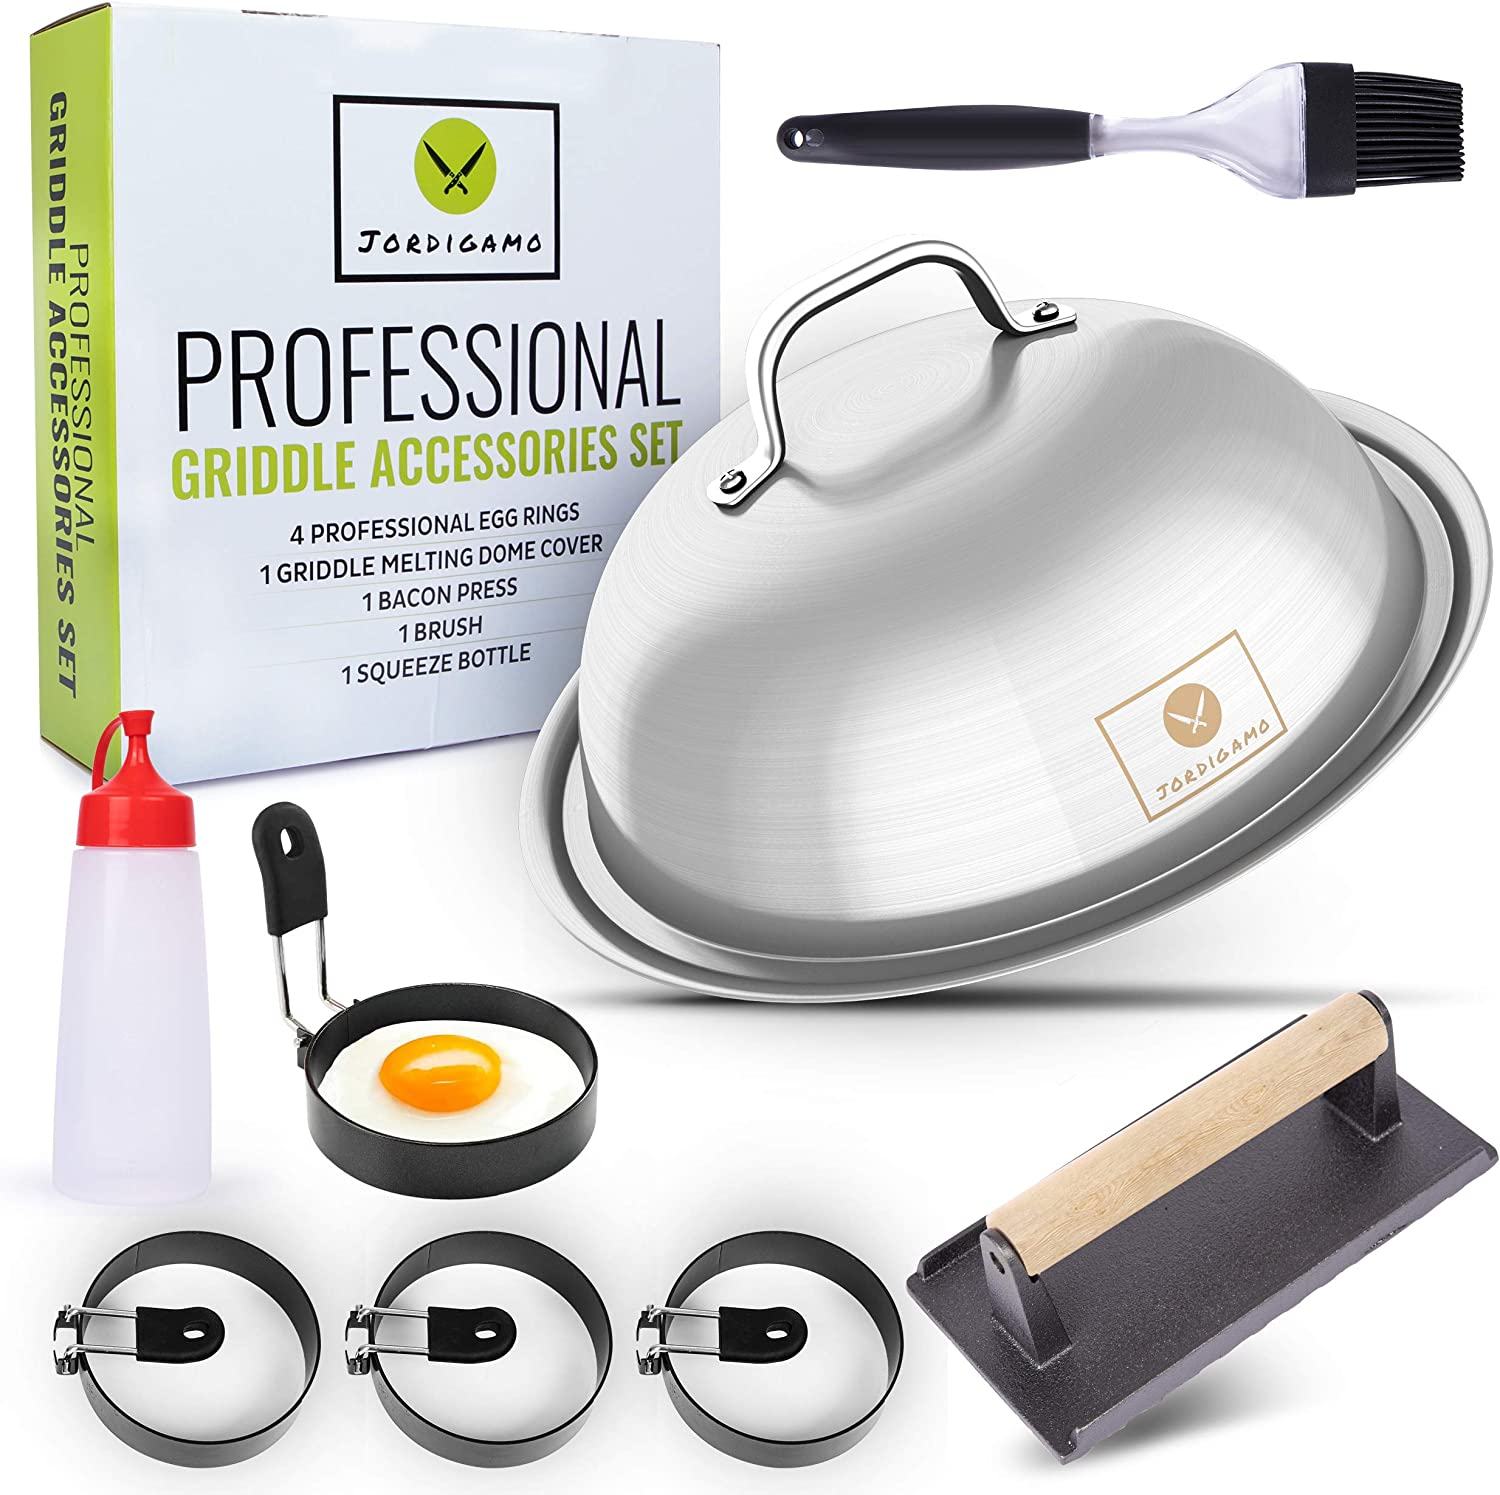 Jordigamo Griddle Accessories Kit, 8 Flat Top Grill Accessories Set for Blackstone & Camp Chef, Hibachi/BBQ Tools, 12? Cheese Melting Griddle Dome Cover Set, Bacon Press, 4 Egg Rings, Brush & Bottle